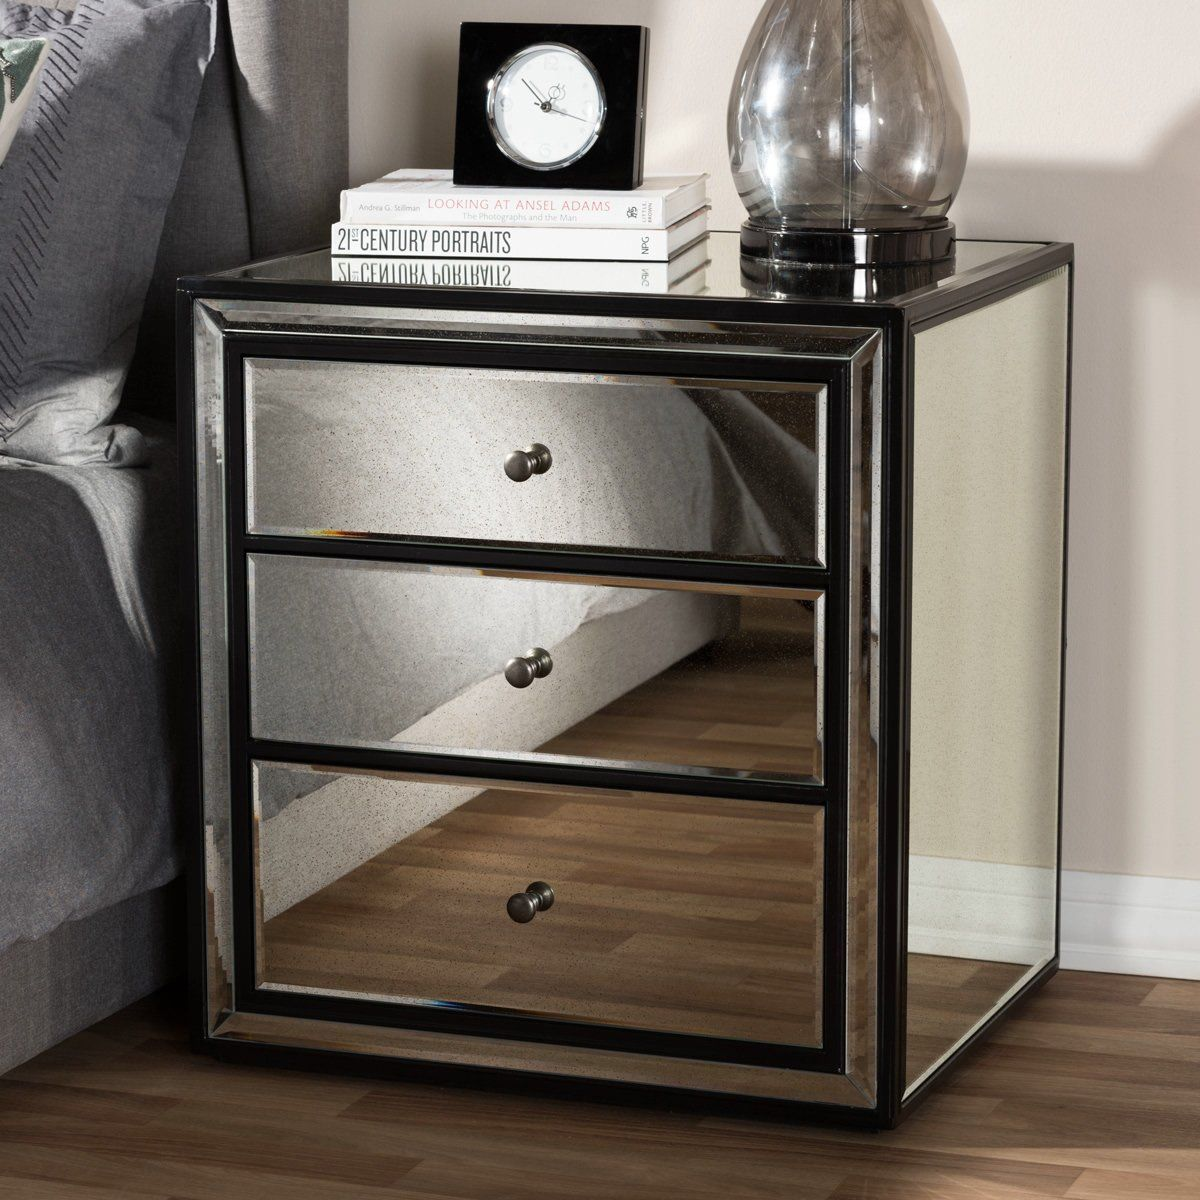 Baxton Studio Avatar Art Deco Style 3 Drawer Mirrored Nightstand Rs2654 Thanks To A Striking Mirrored Nightstand Mirrored Furniture Bedroom Furniture Stores